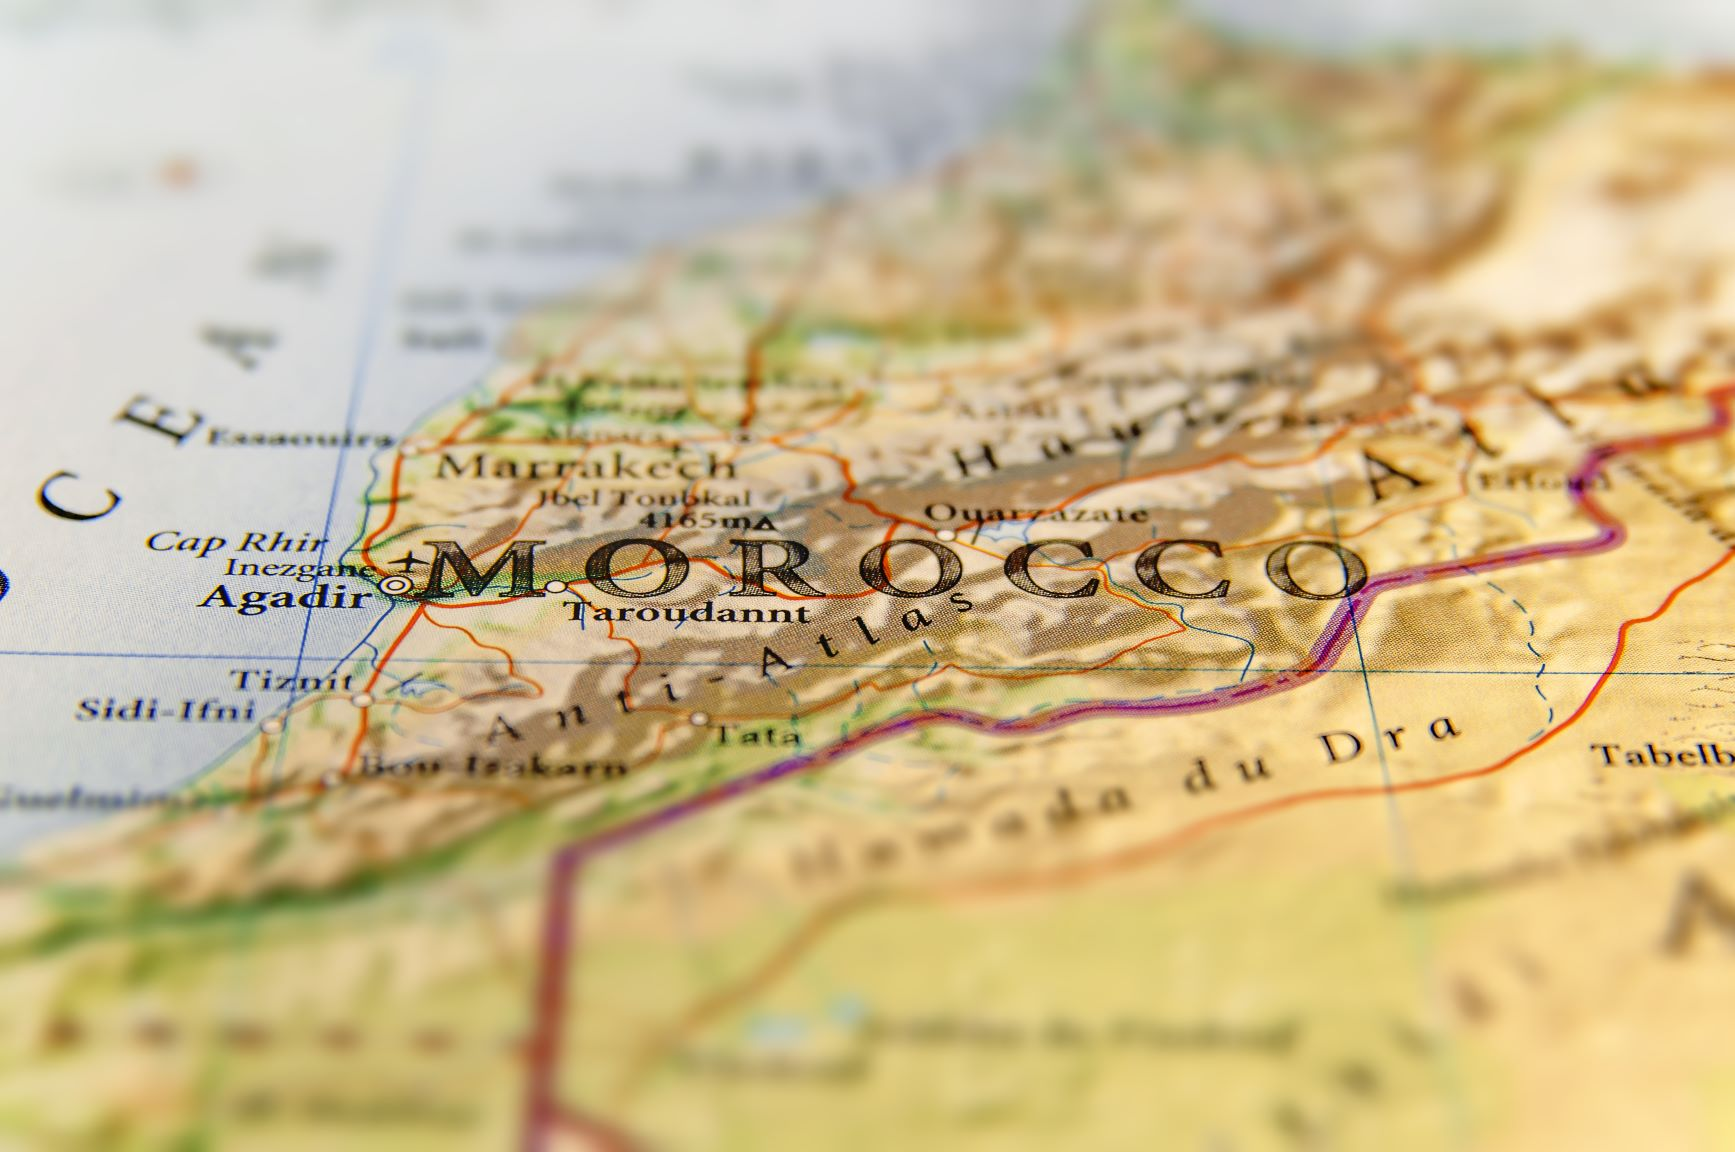 Morocco Polisario conflict a fiscal and diplomatic risk for Africa's steady eddy